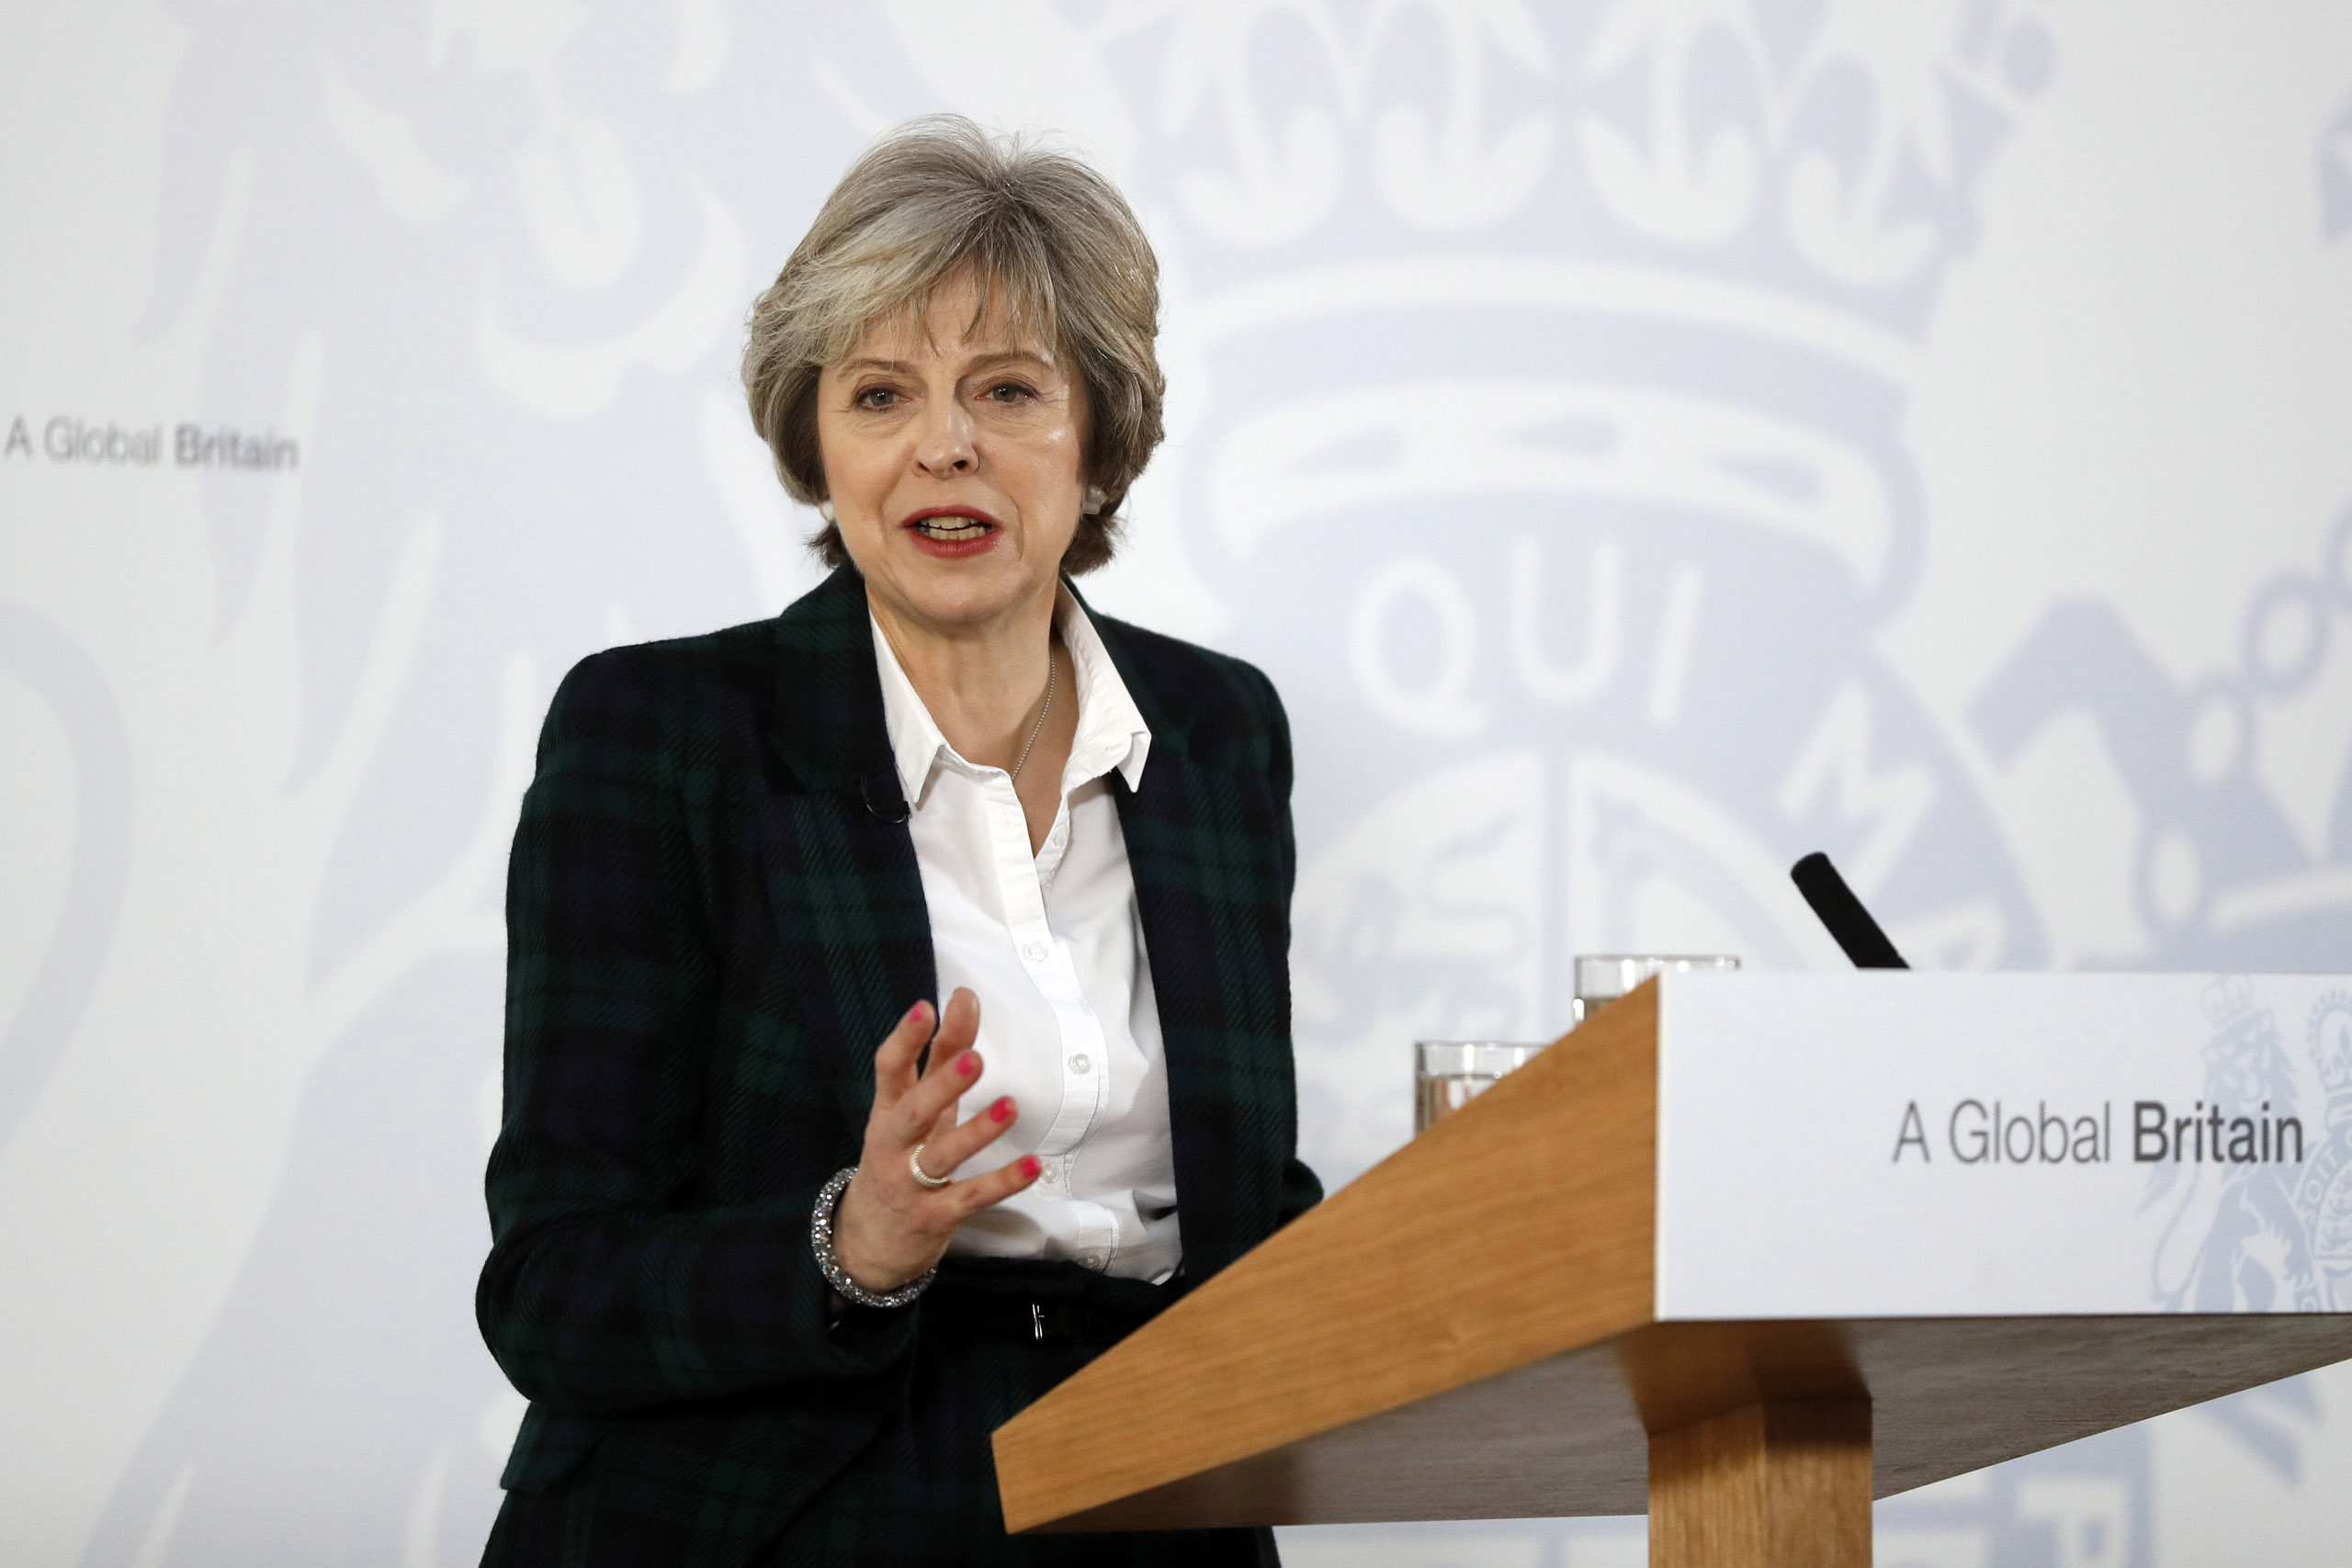 British Prime Minister Theresa May delivers her keynote speech on Brexit at Lancaster House  in London, England on Jan. 17, 2017.